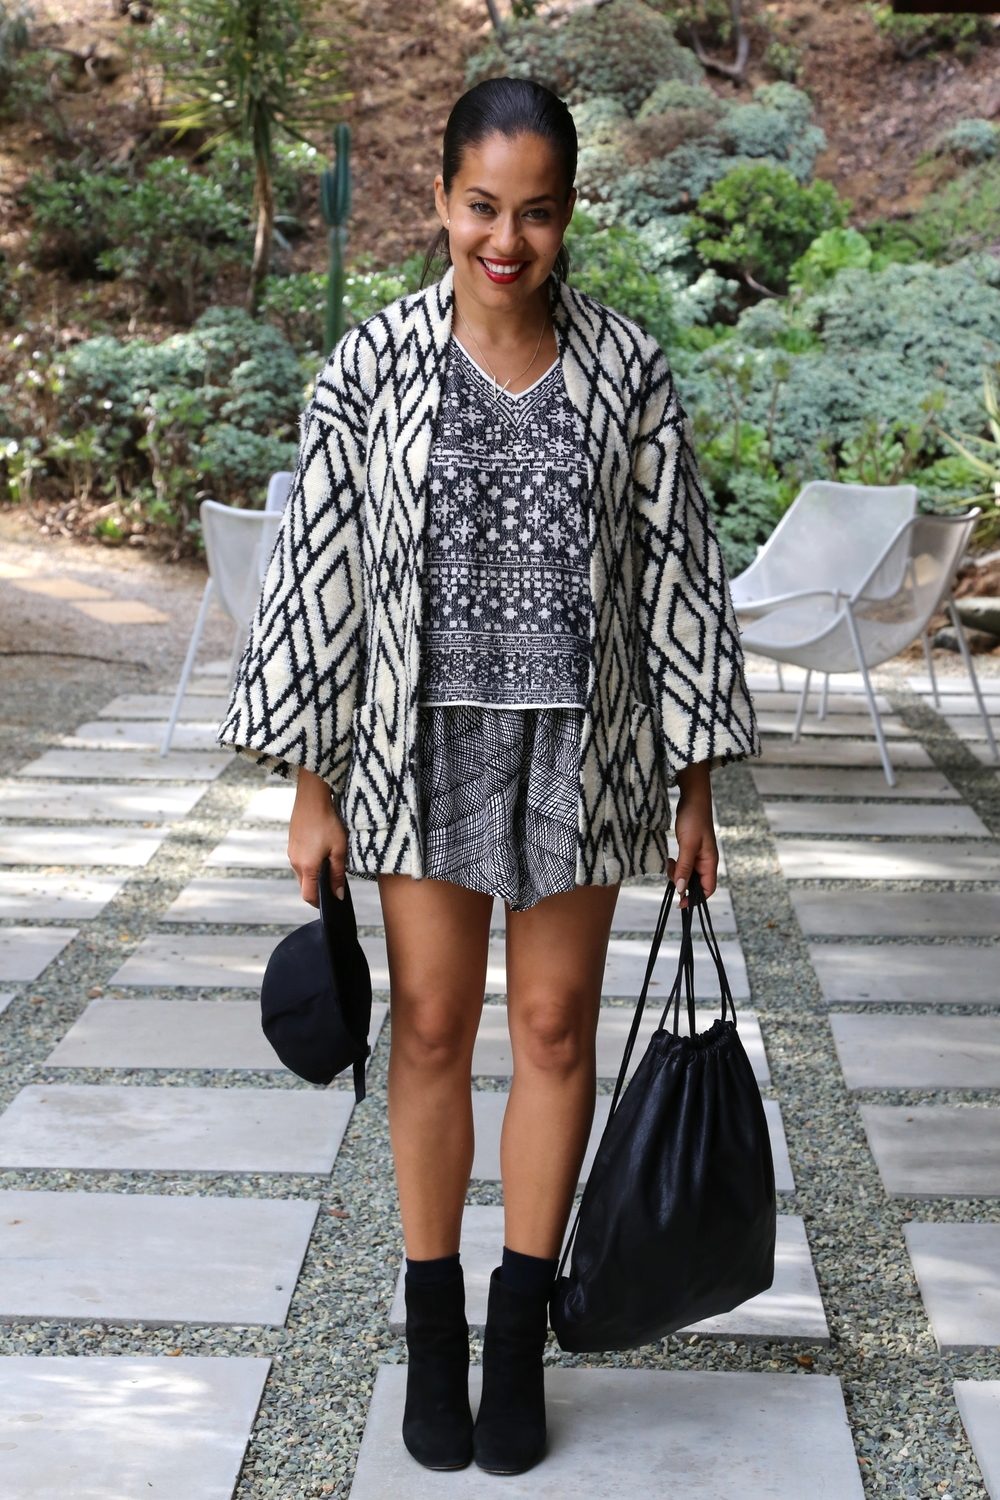 ISABEL-MARANT-TOP-KENZO-SHORTS-ALEXANDER-WANG-BAG-LOS-ANGELES.JPG